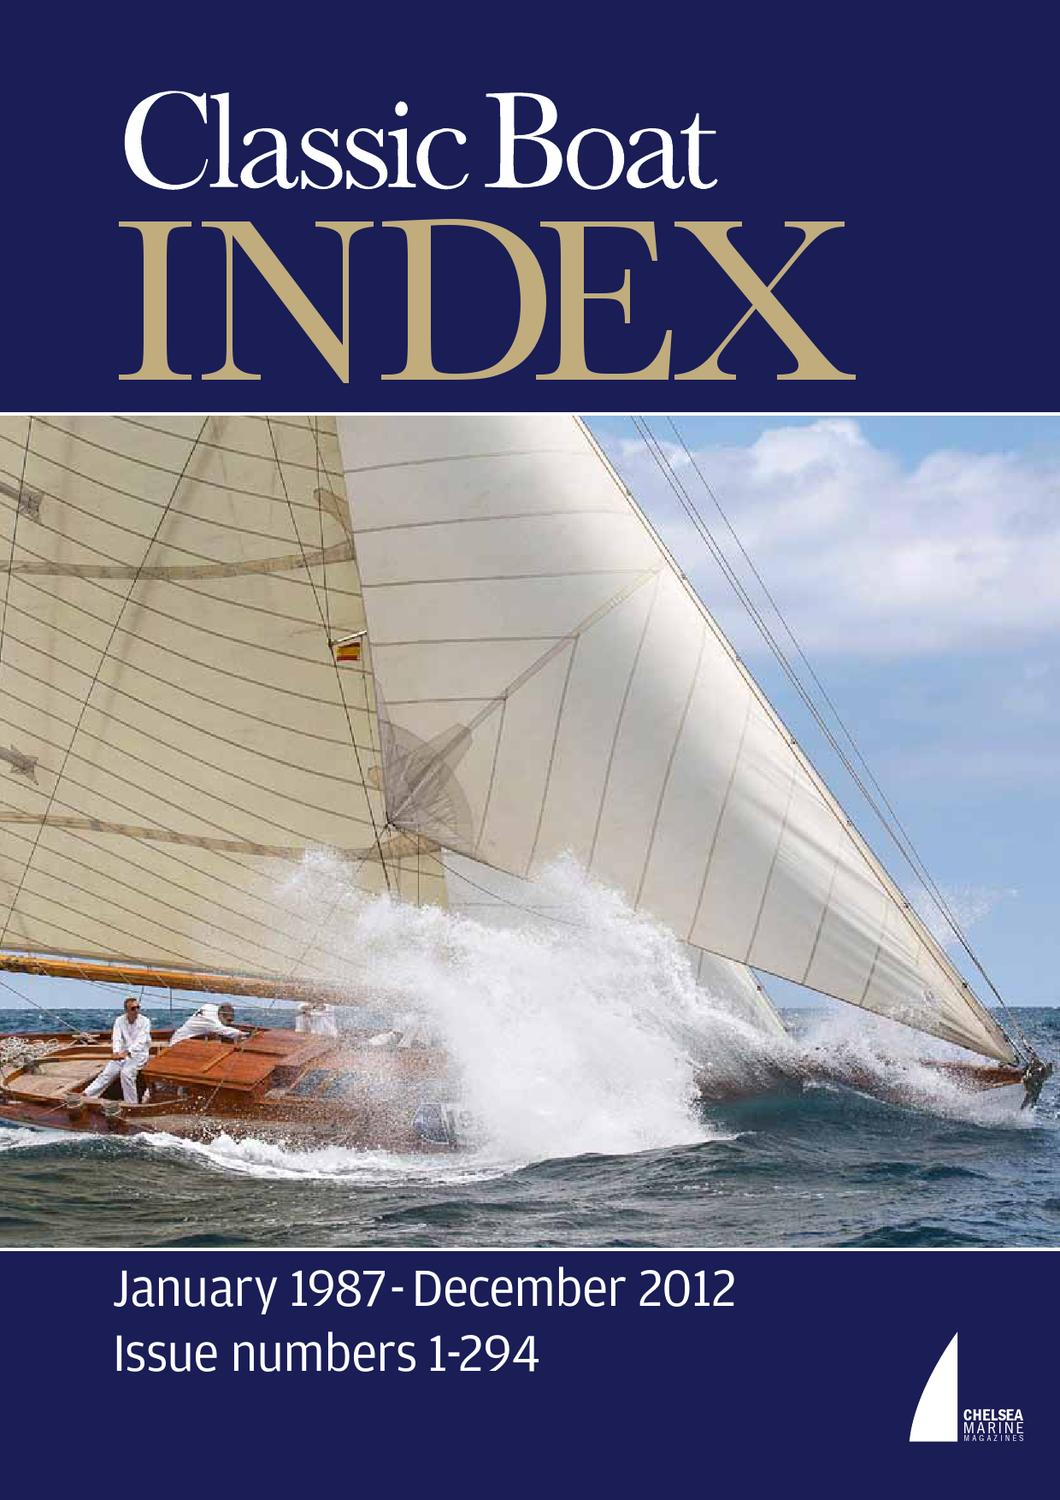 Classic Boat Index by The Chelsea Magazine Company - issuu